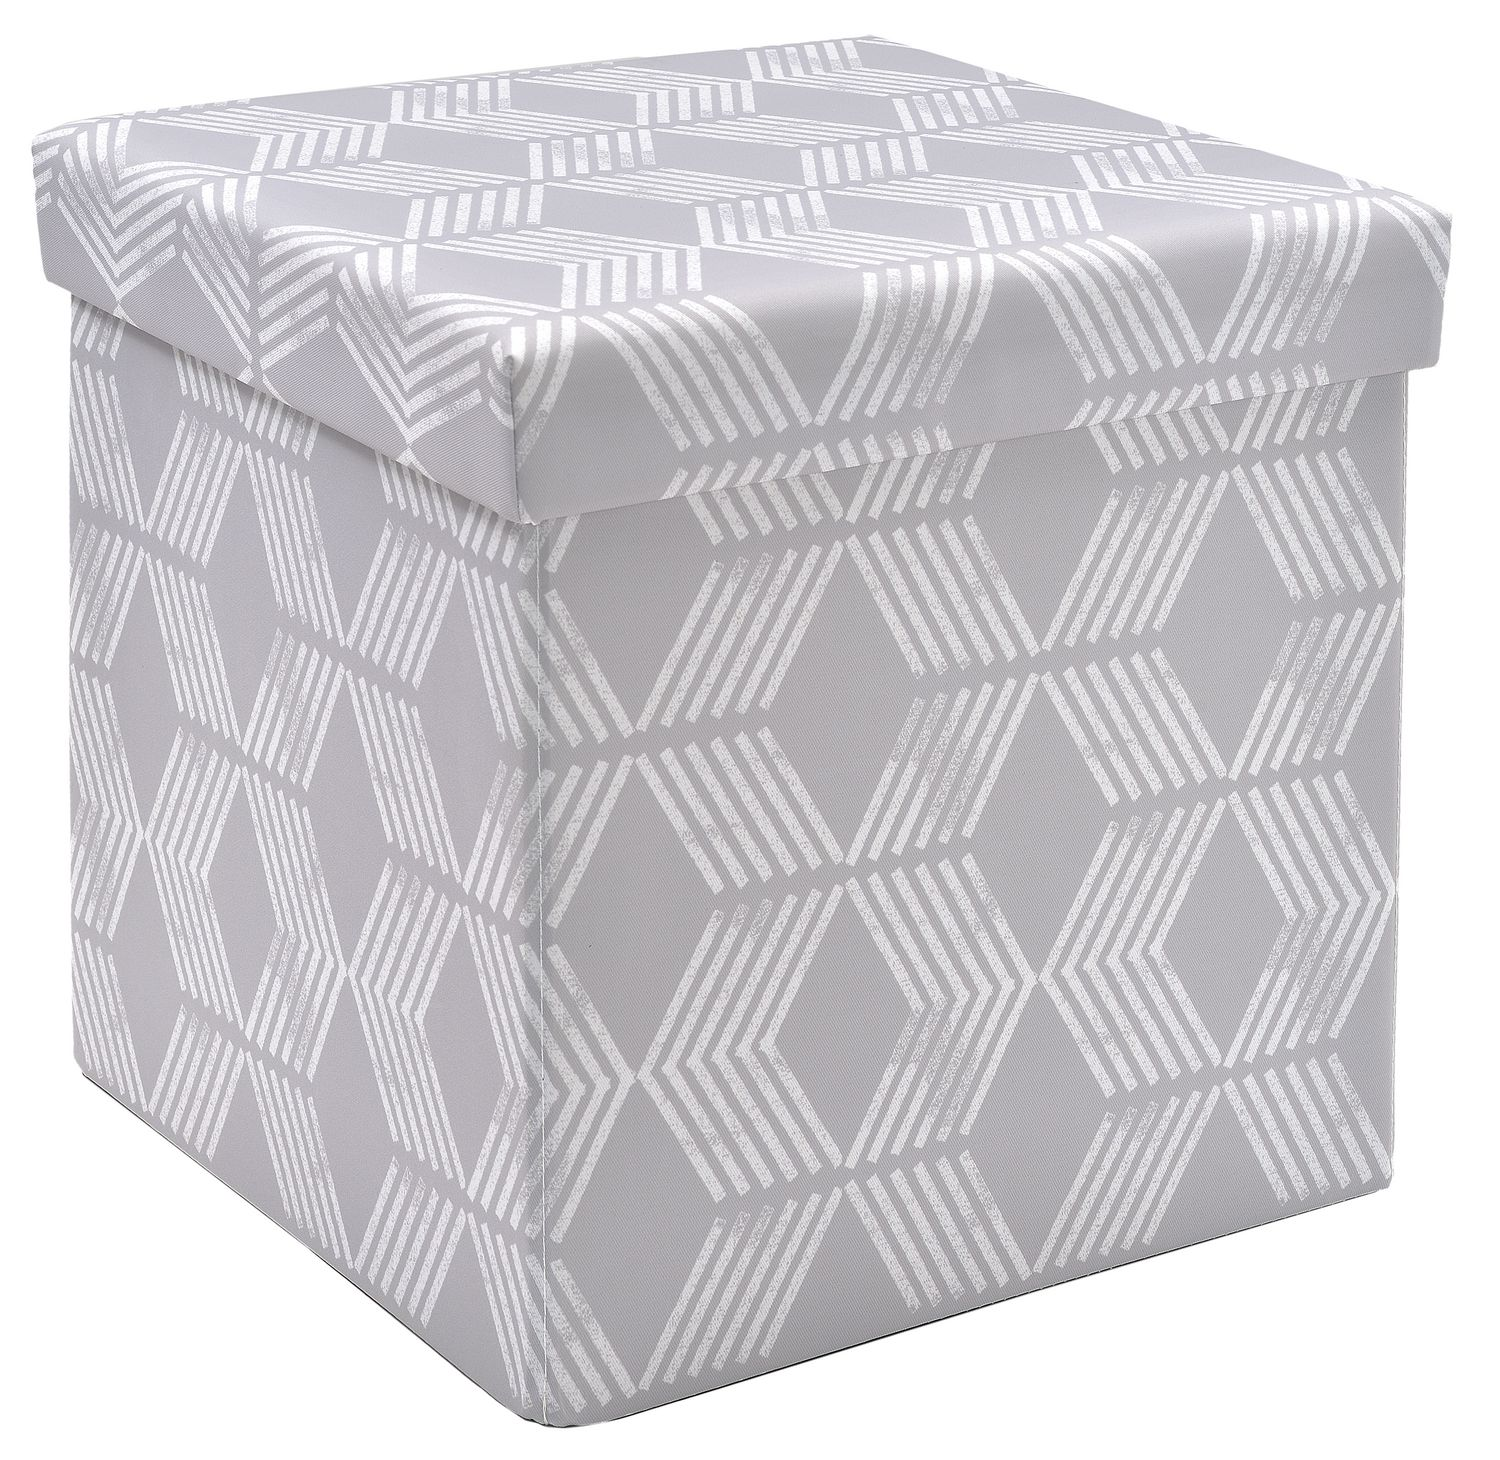 Stupendous Fhe Group Red Label Foldable Storage Cube Grey Chevron Gamerscity Chair Design For Home Gamerscityorg